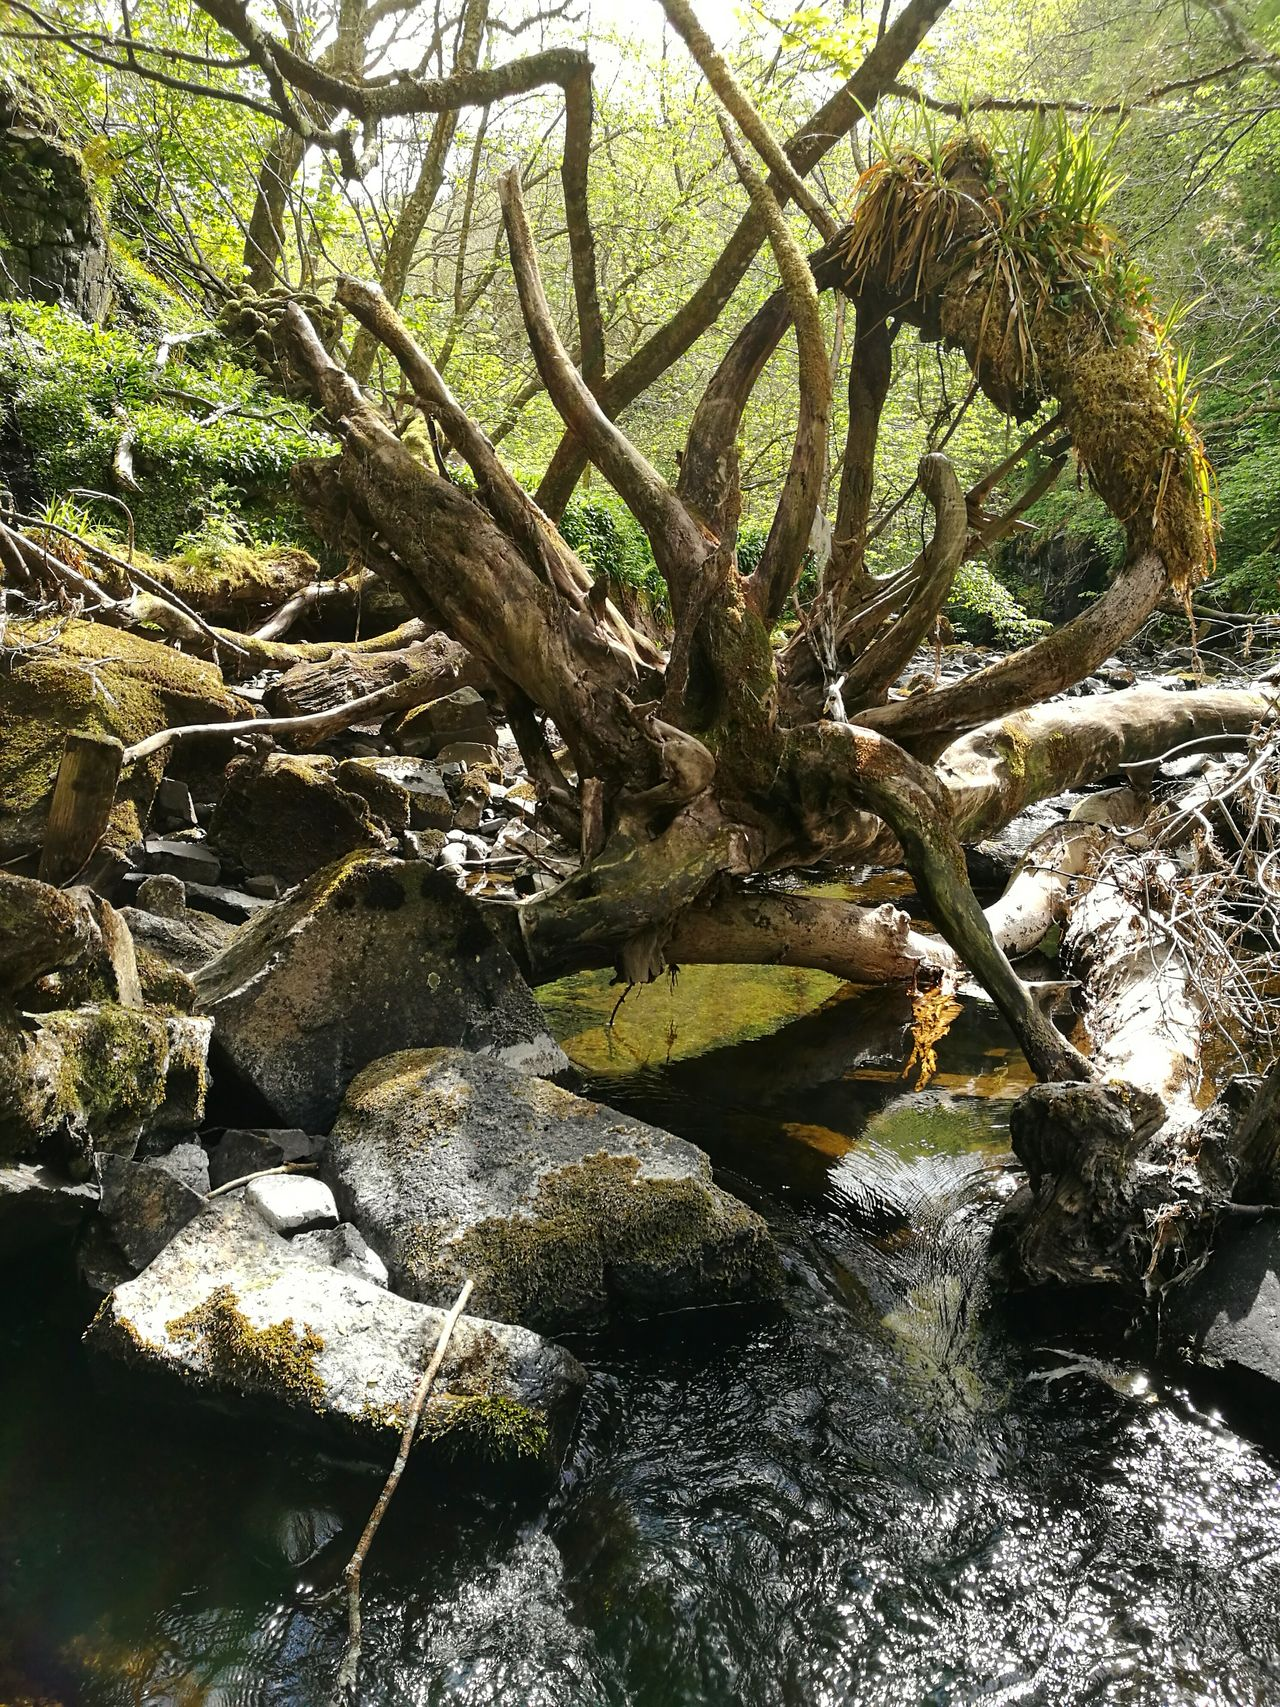 Uig Isle Of Skye Tree Water Nature Branches Rocks Tree Roots  Forrest Outdoors Nature Sunlight HuaweiP9 Huaweiphotography